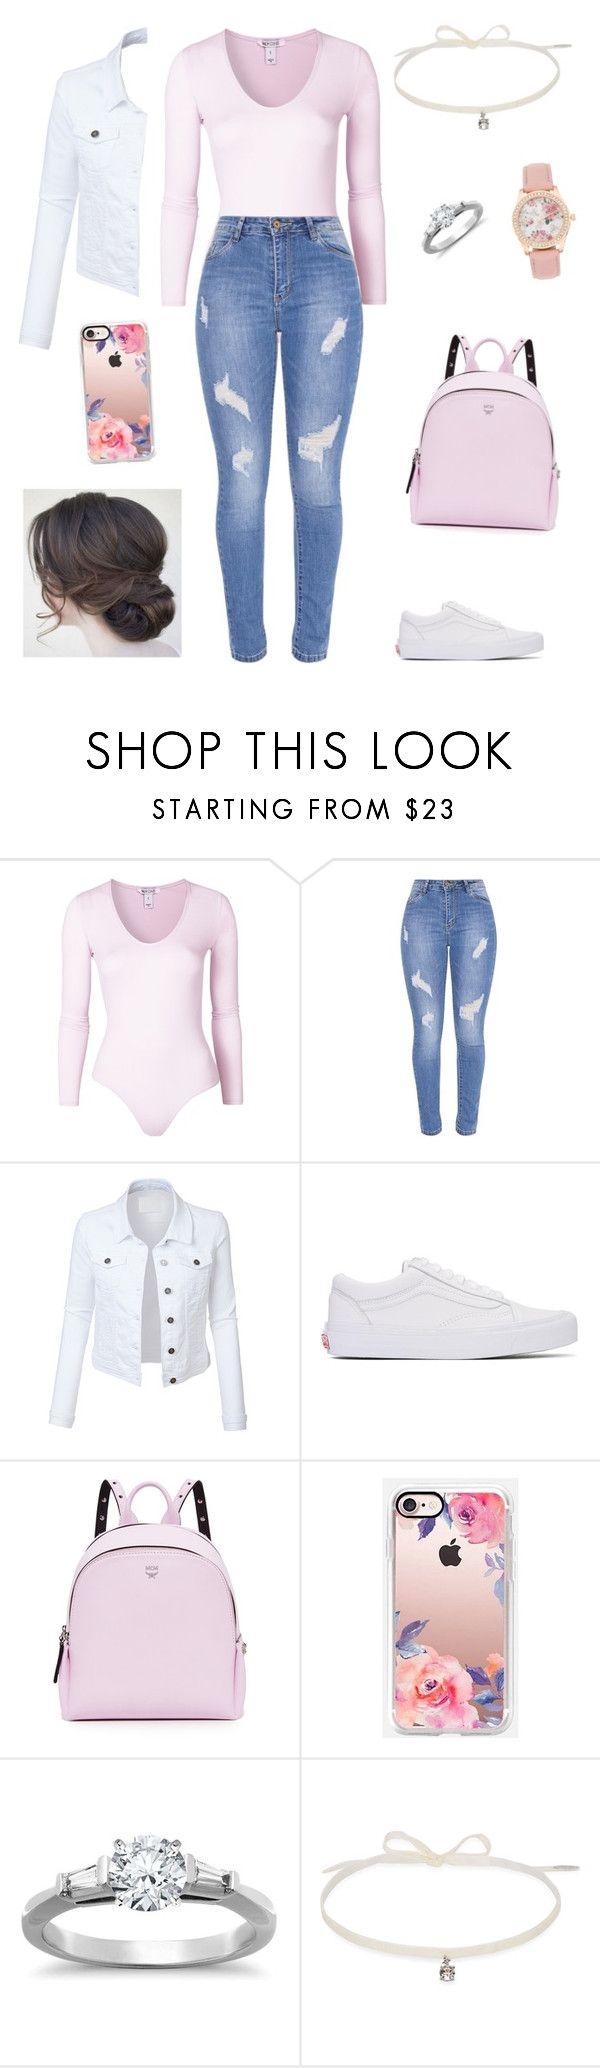 """Untitled #1690"" by rosemlove ❤ liked on Polyvore featuring LE3NO, Vans, MCM, Casetify, Tiffany & Co. and Joomi Lim"